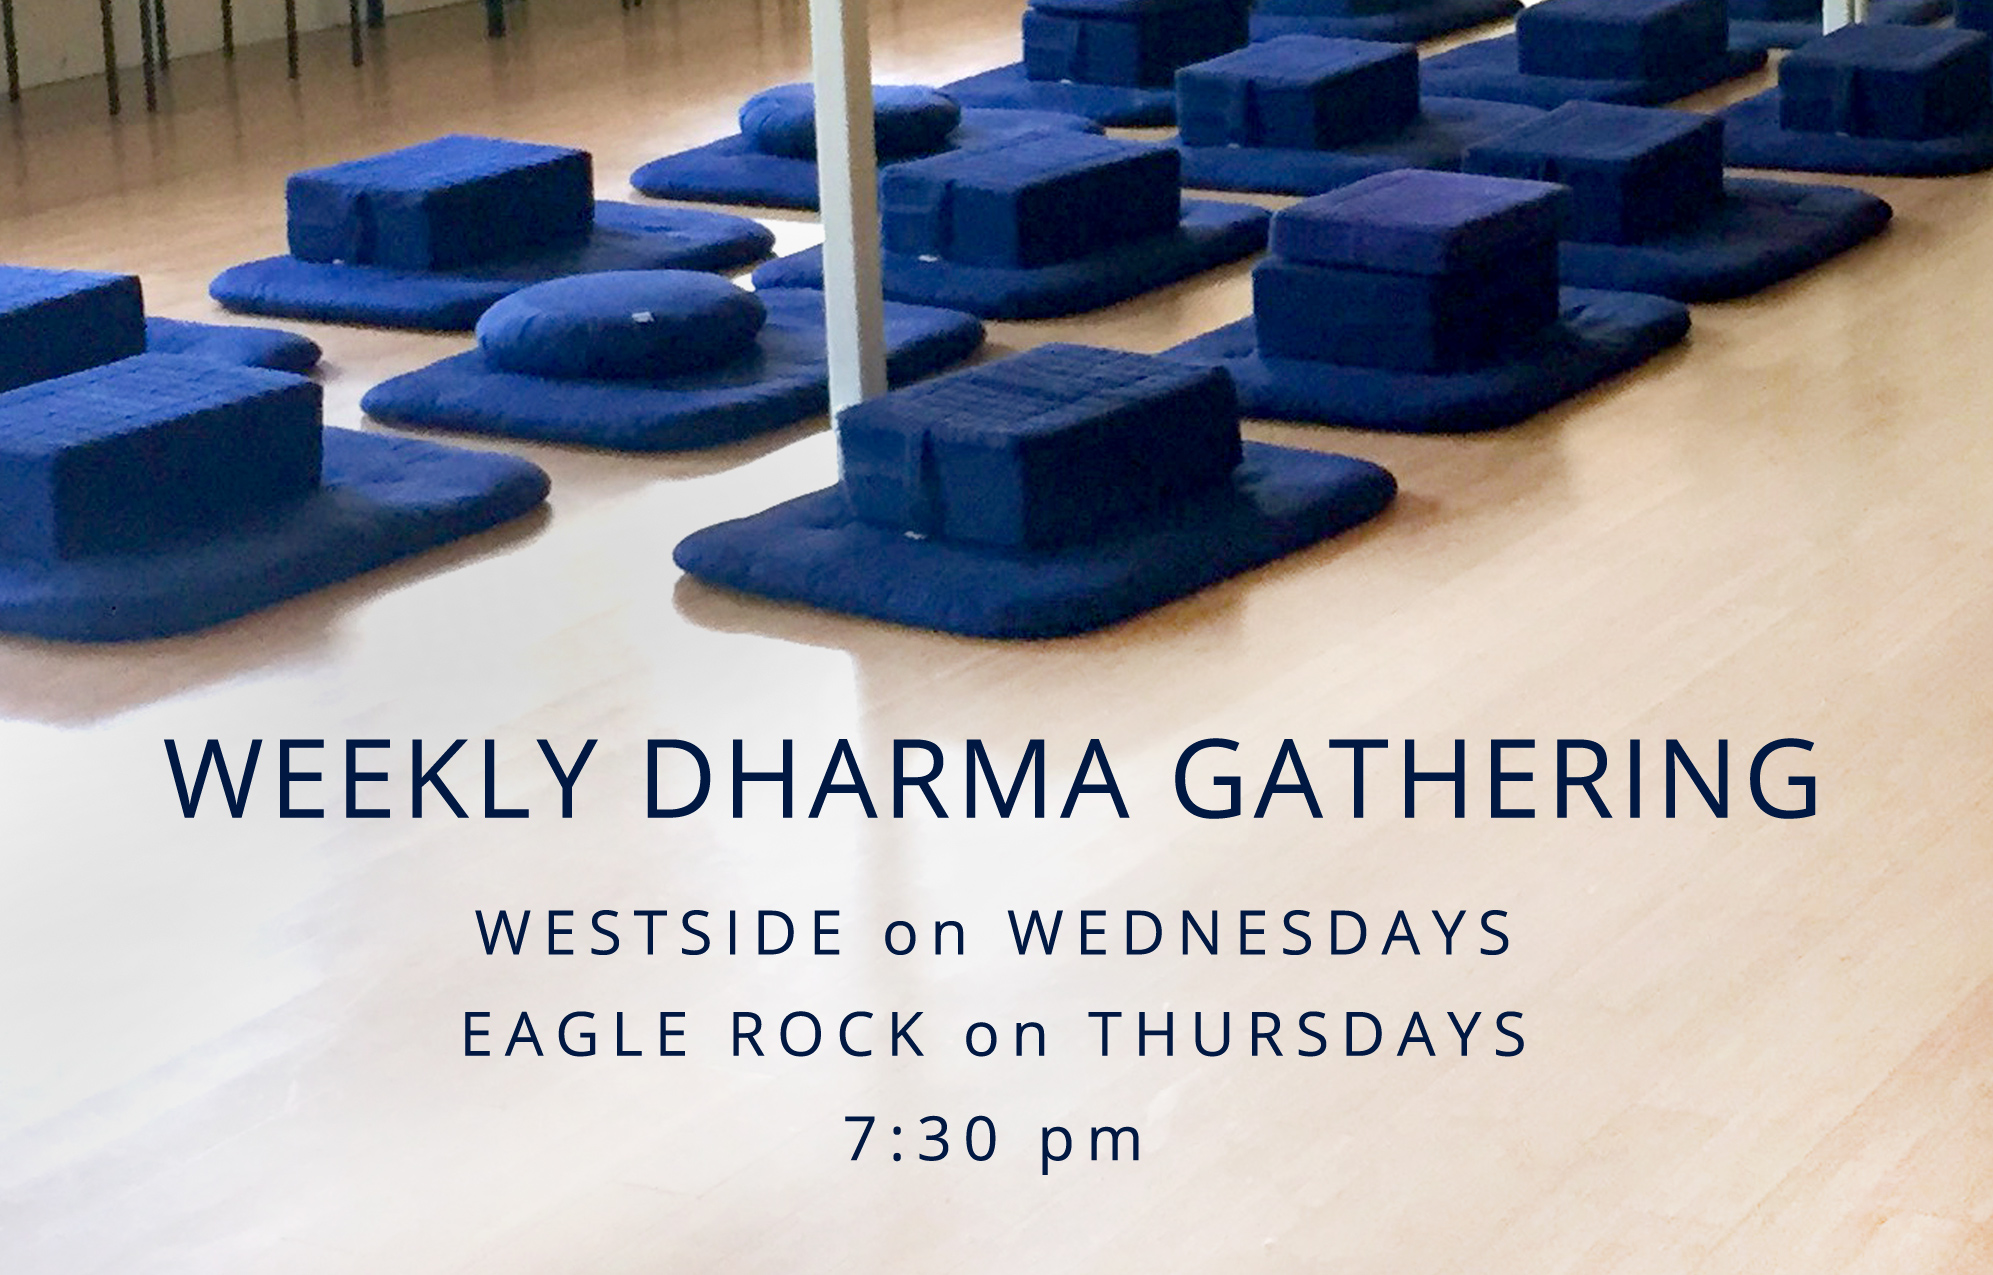 weekly dharma gathering at shambhala center in los angeles